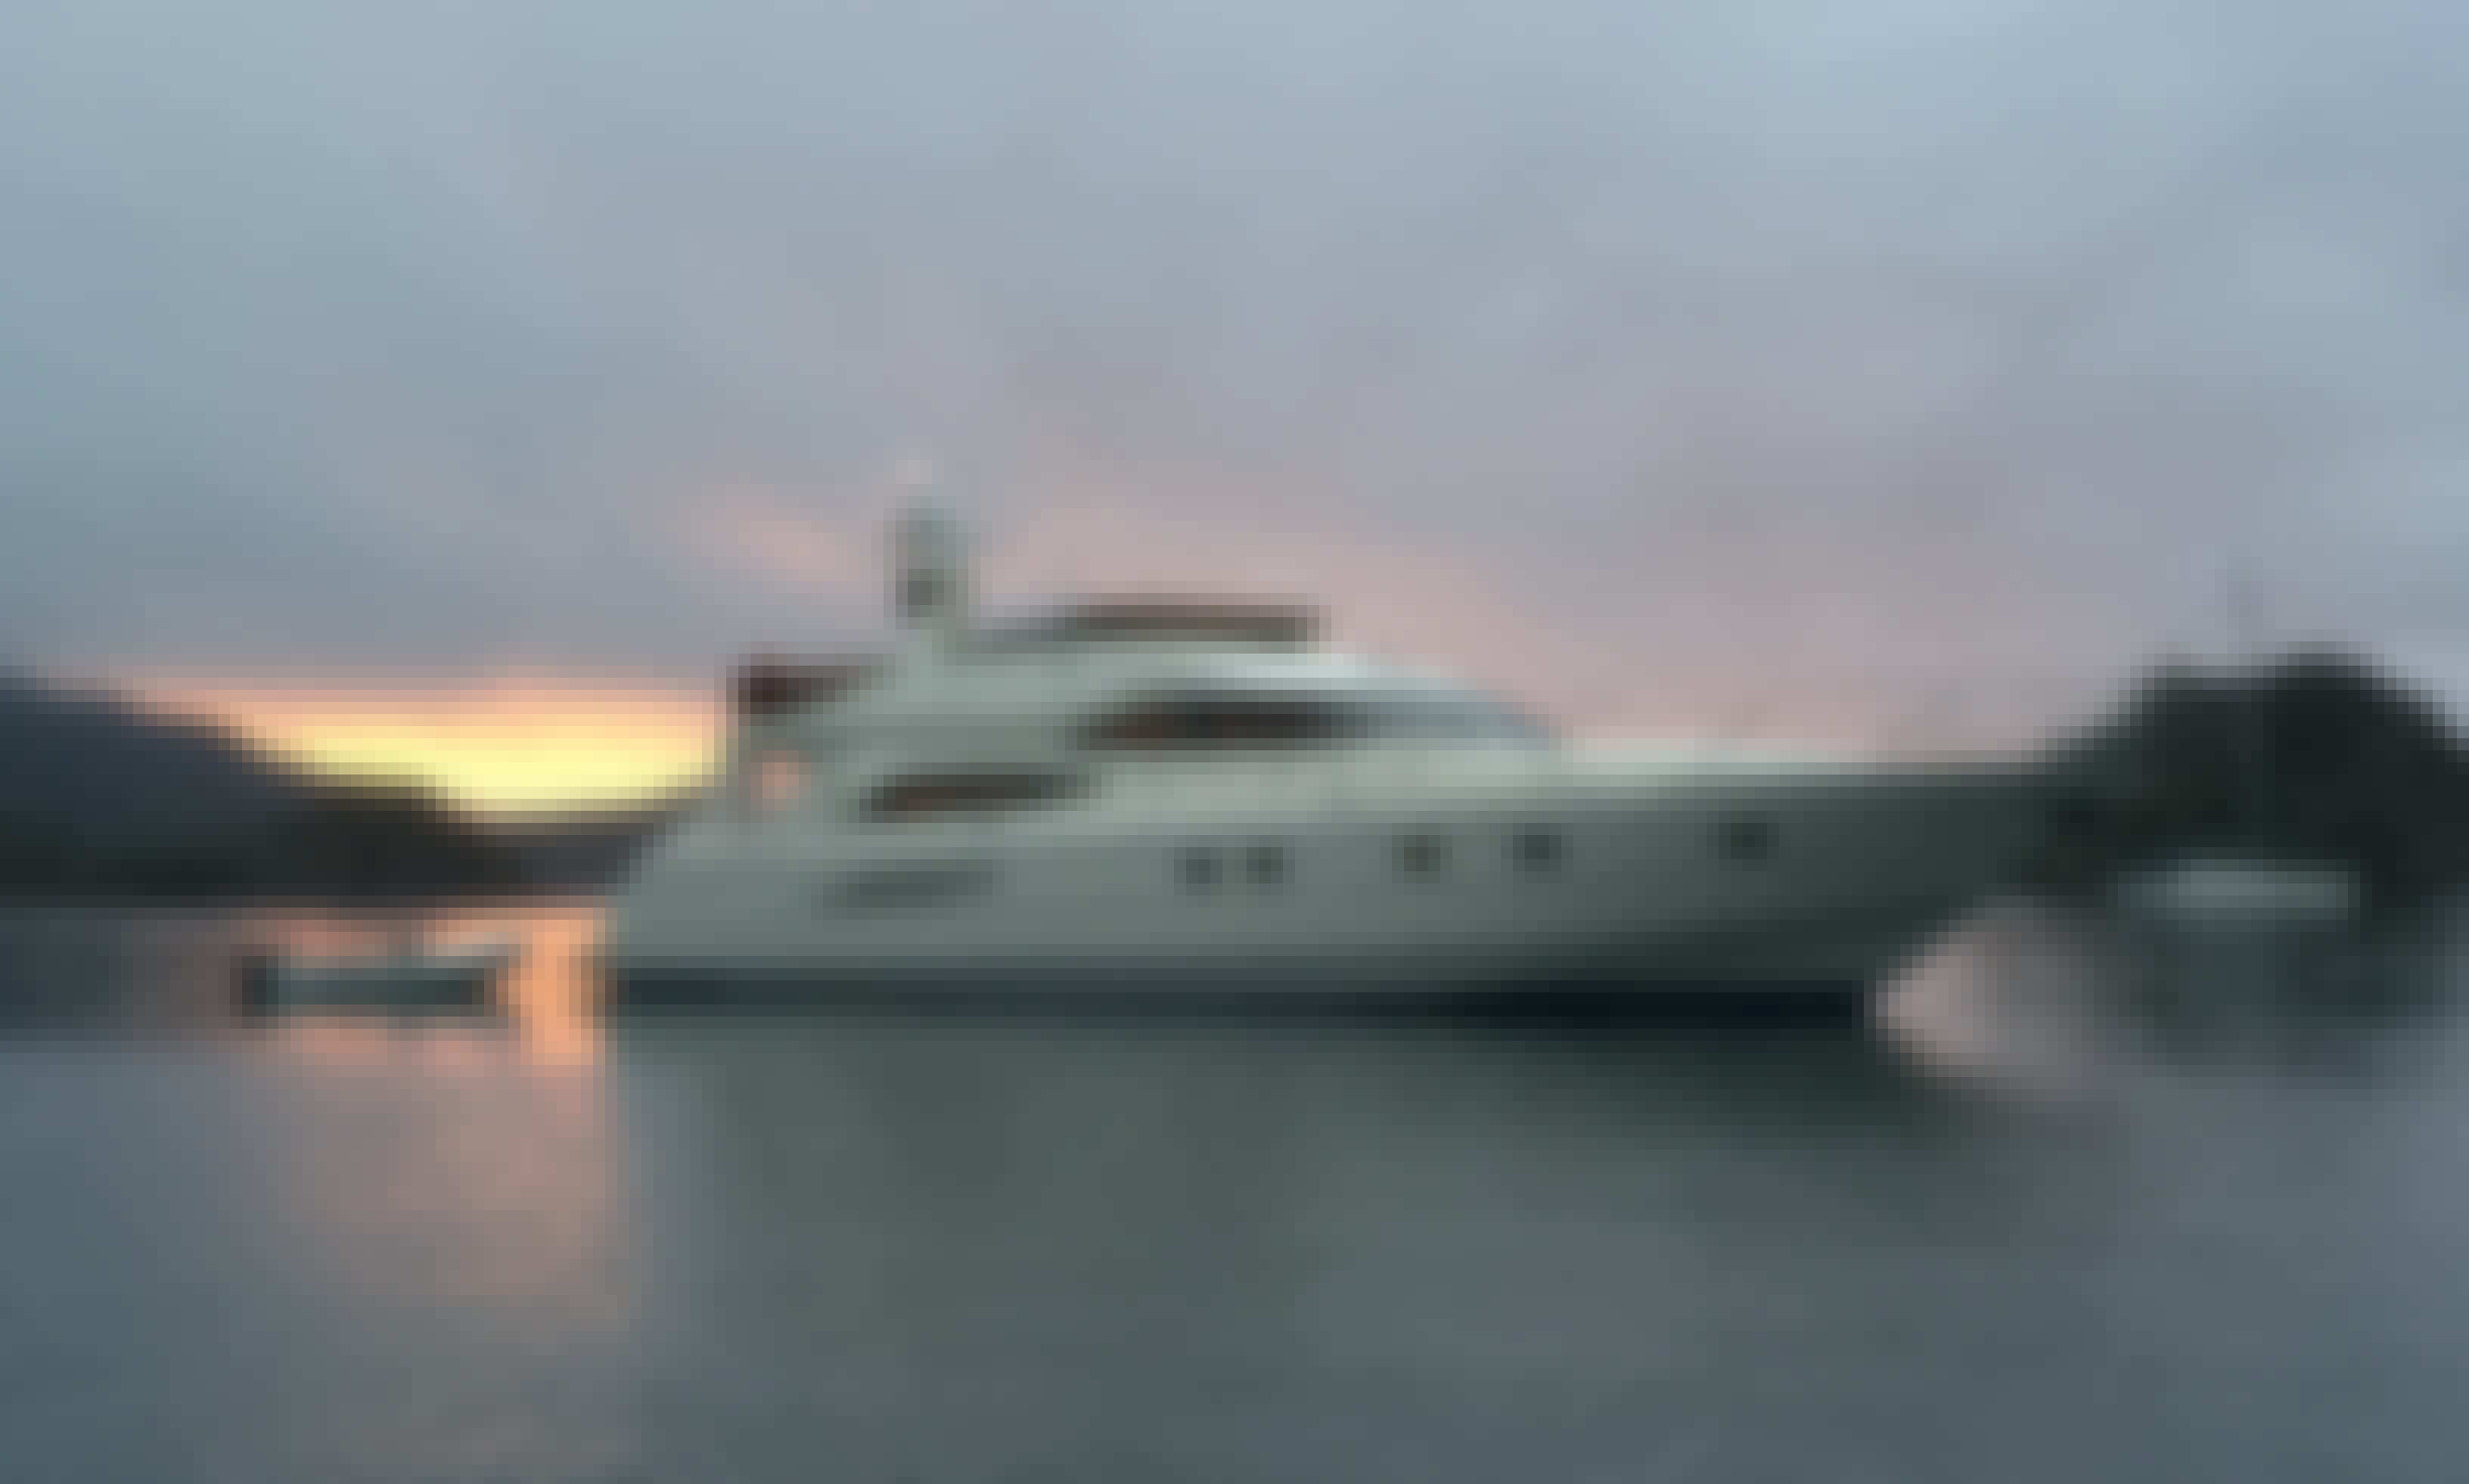 Motor Yacht rental in the Pacific Islands